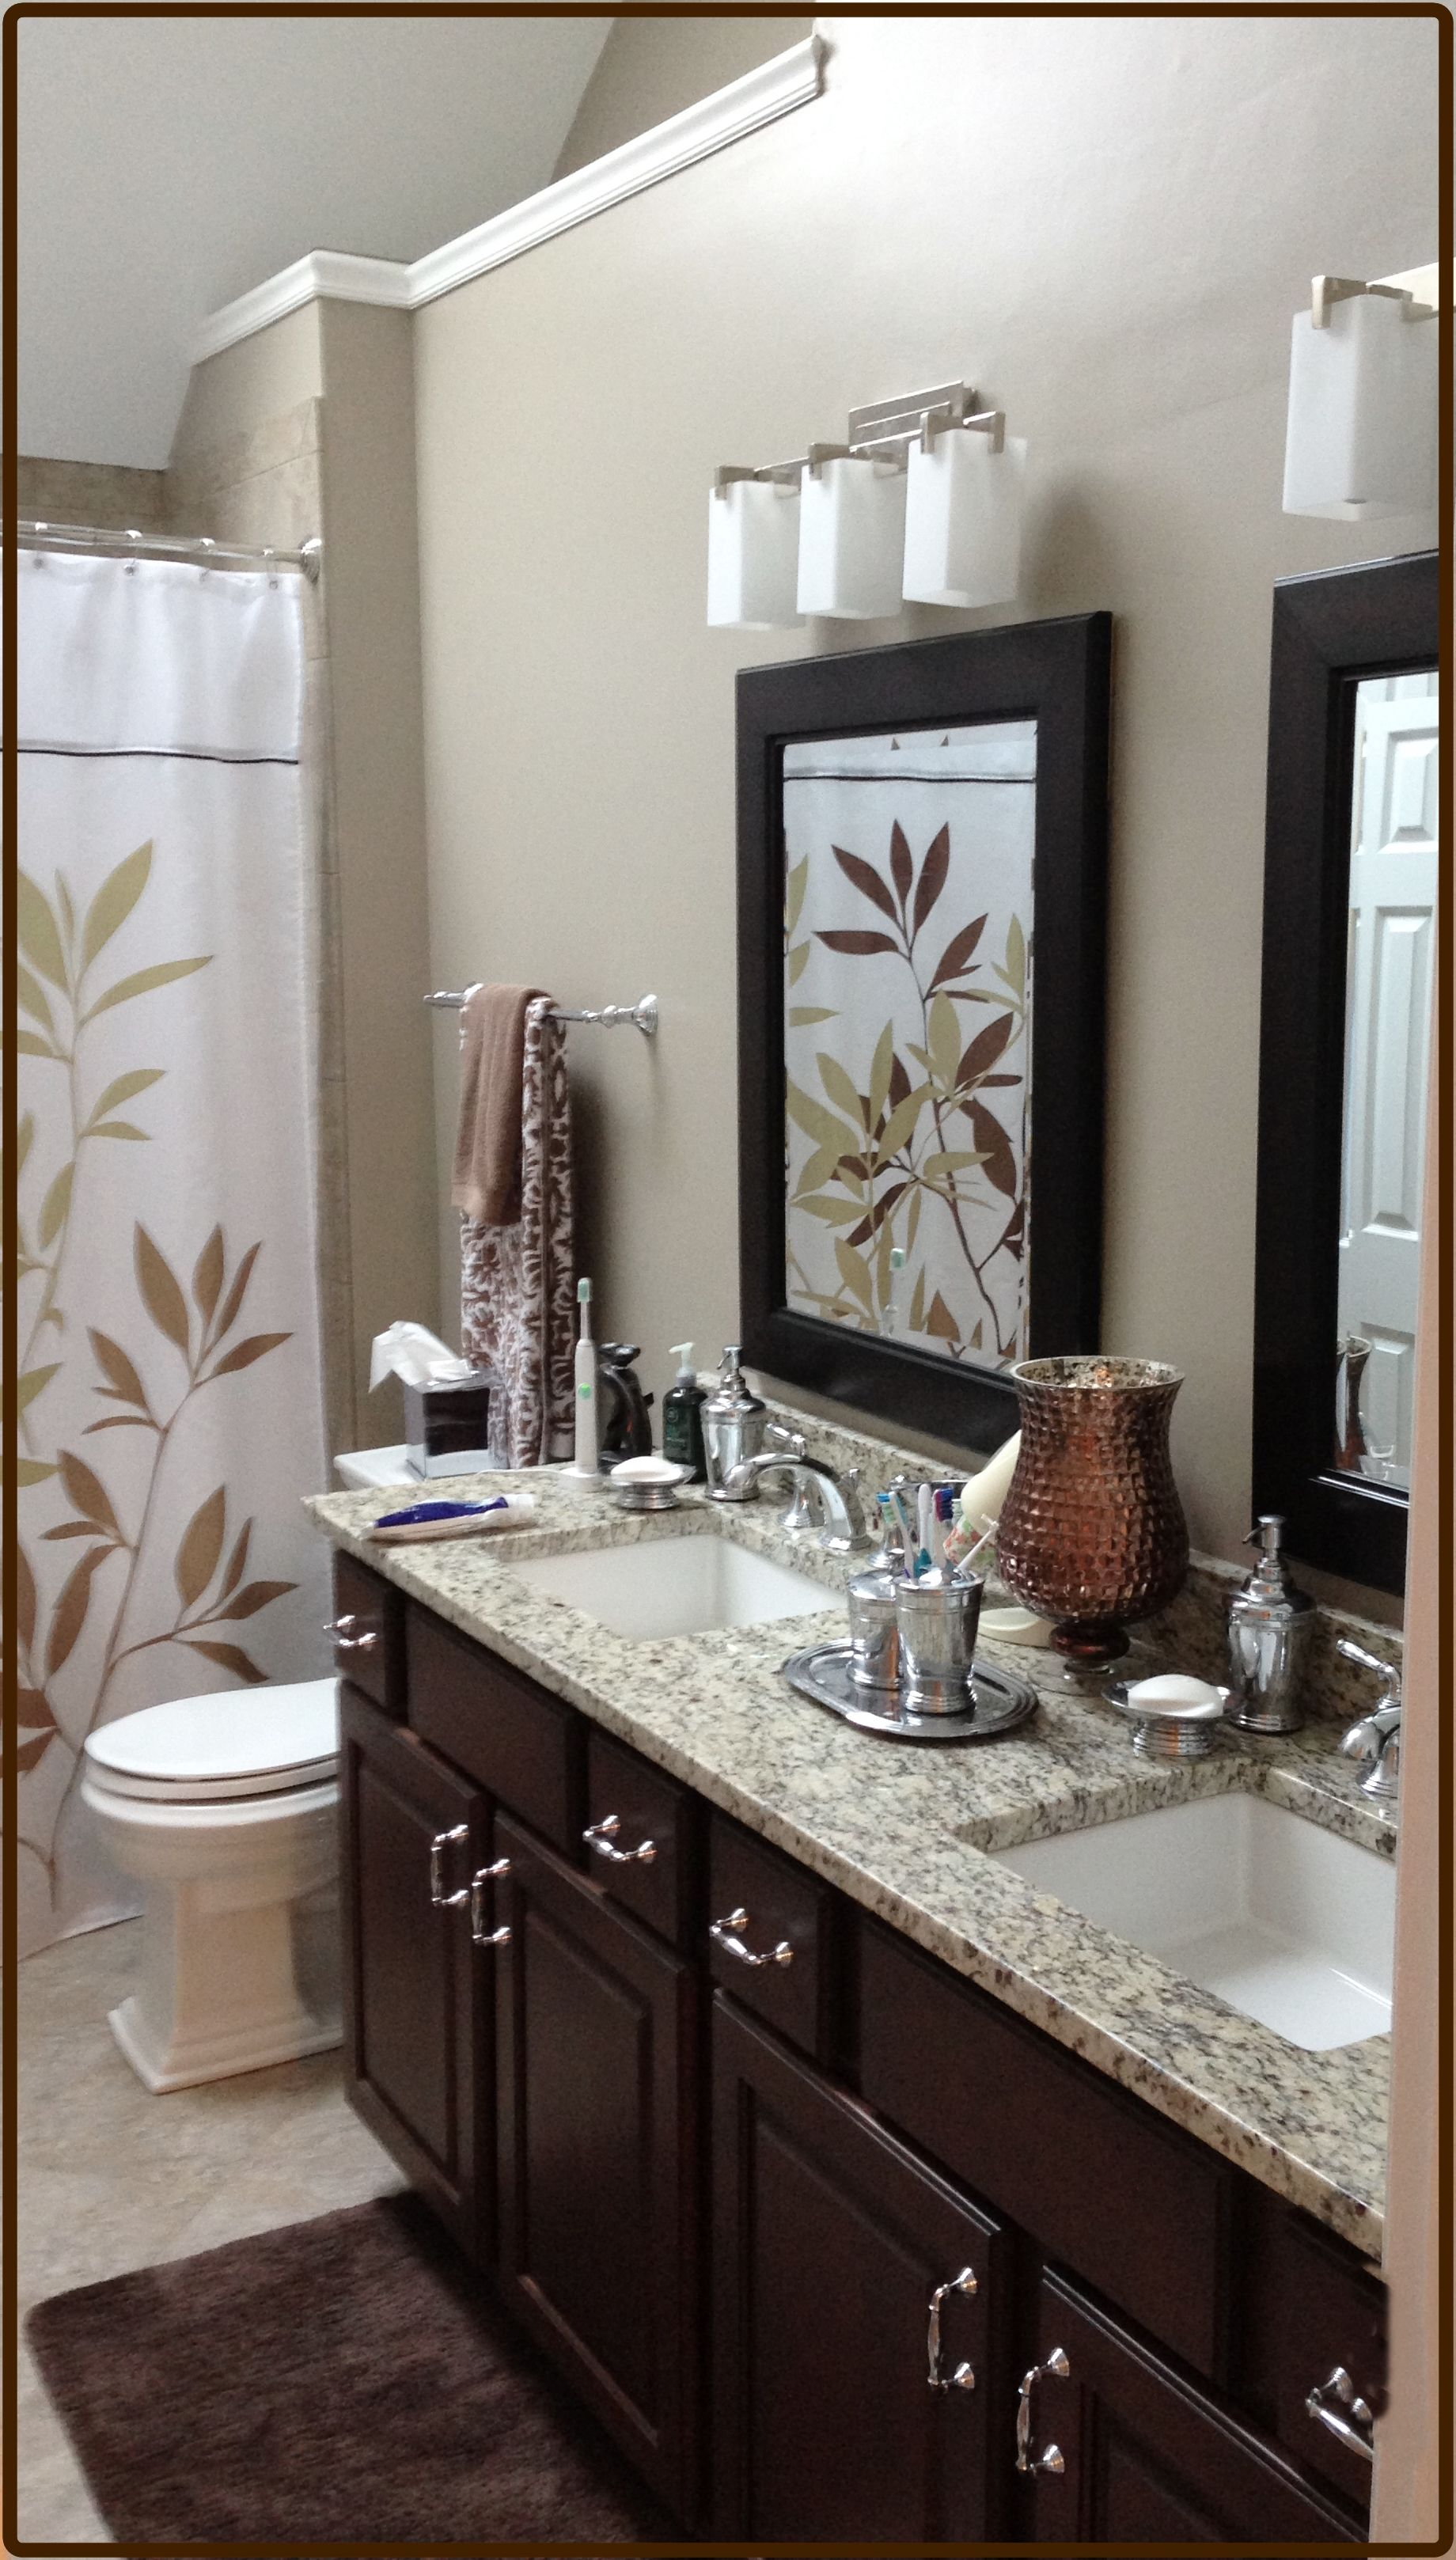 This Bathroom Was Completed In Under A Week By Our Quot 7 Day Bath Quot Division The Entire Space Was